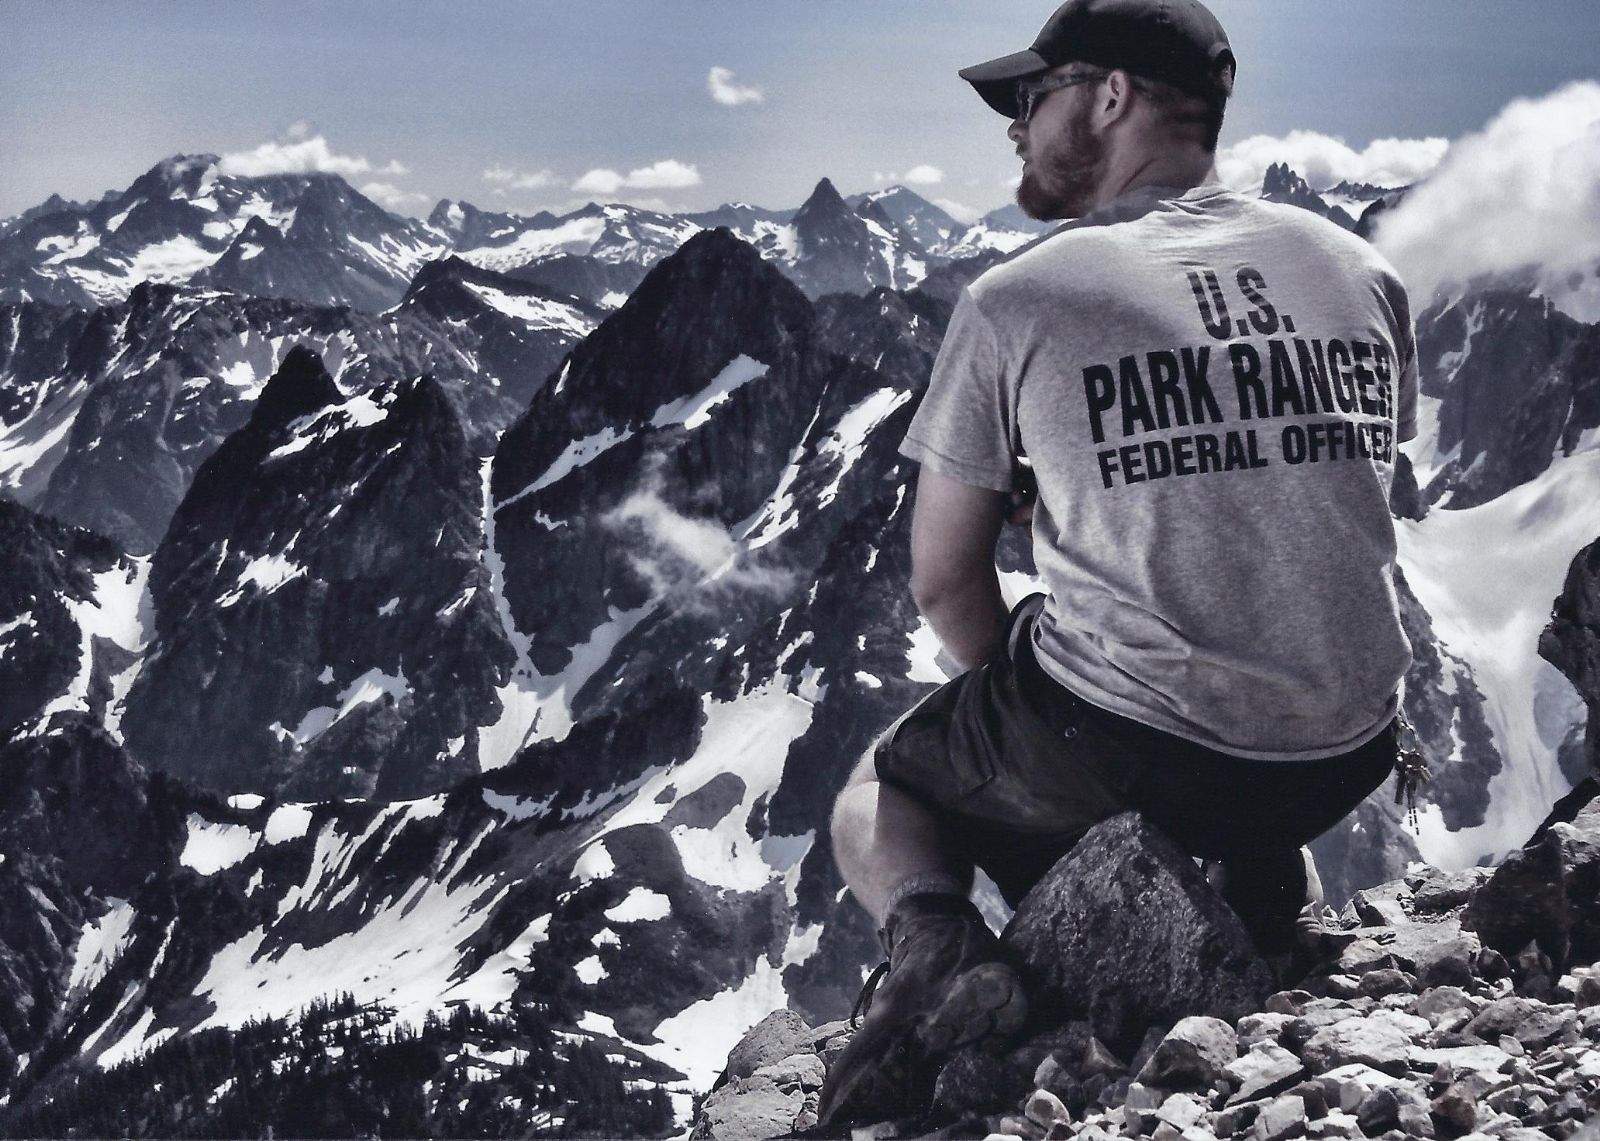 Photo of U.S. Park Ranger perched on mountainside.